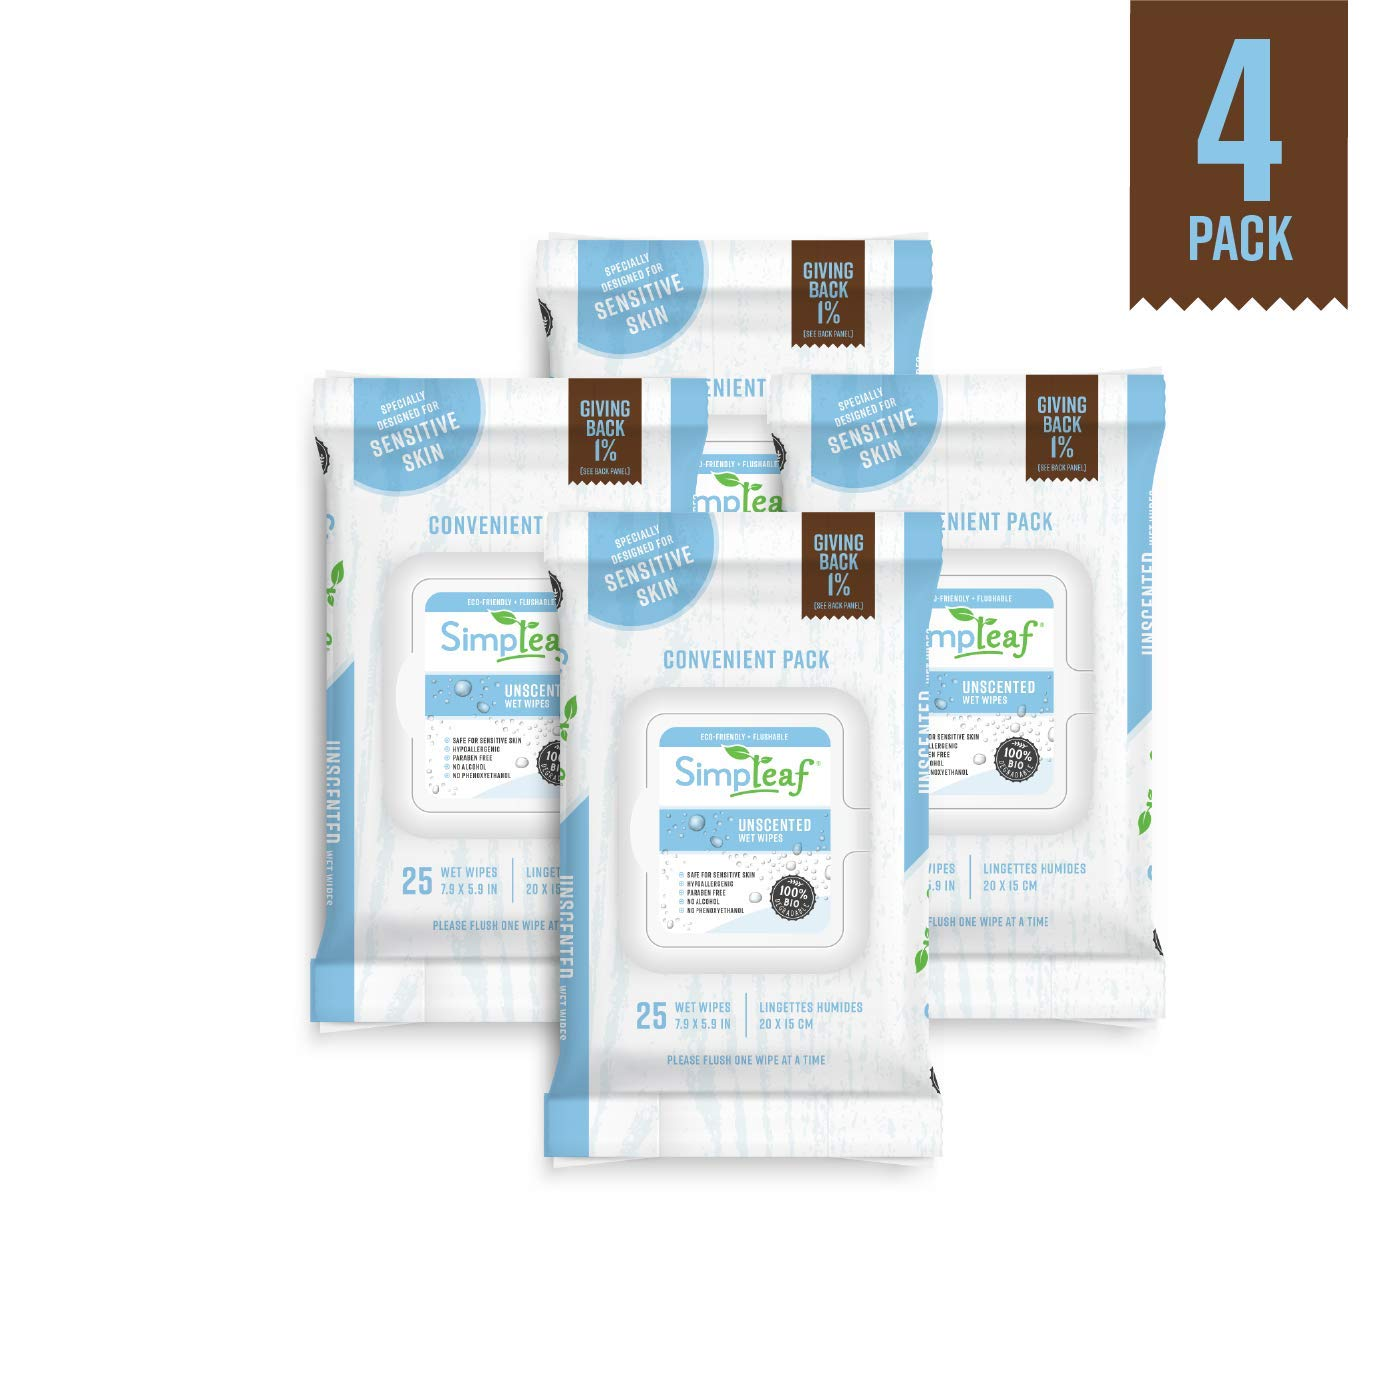 Simpleaf Flushable Wipes (Unscented): Eco- Friendly, Thick and Effective, Paraben and Alcohol Free, Hypoallergenic and Safe for Sensitive Skin, Vitamin E with Soothing Aloe Vera (4 Pack of 25 Counts)